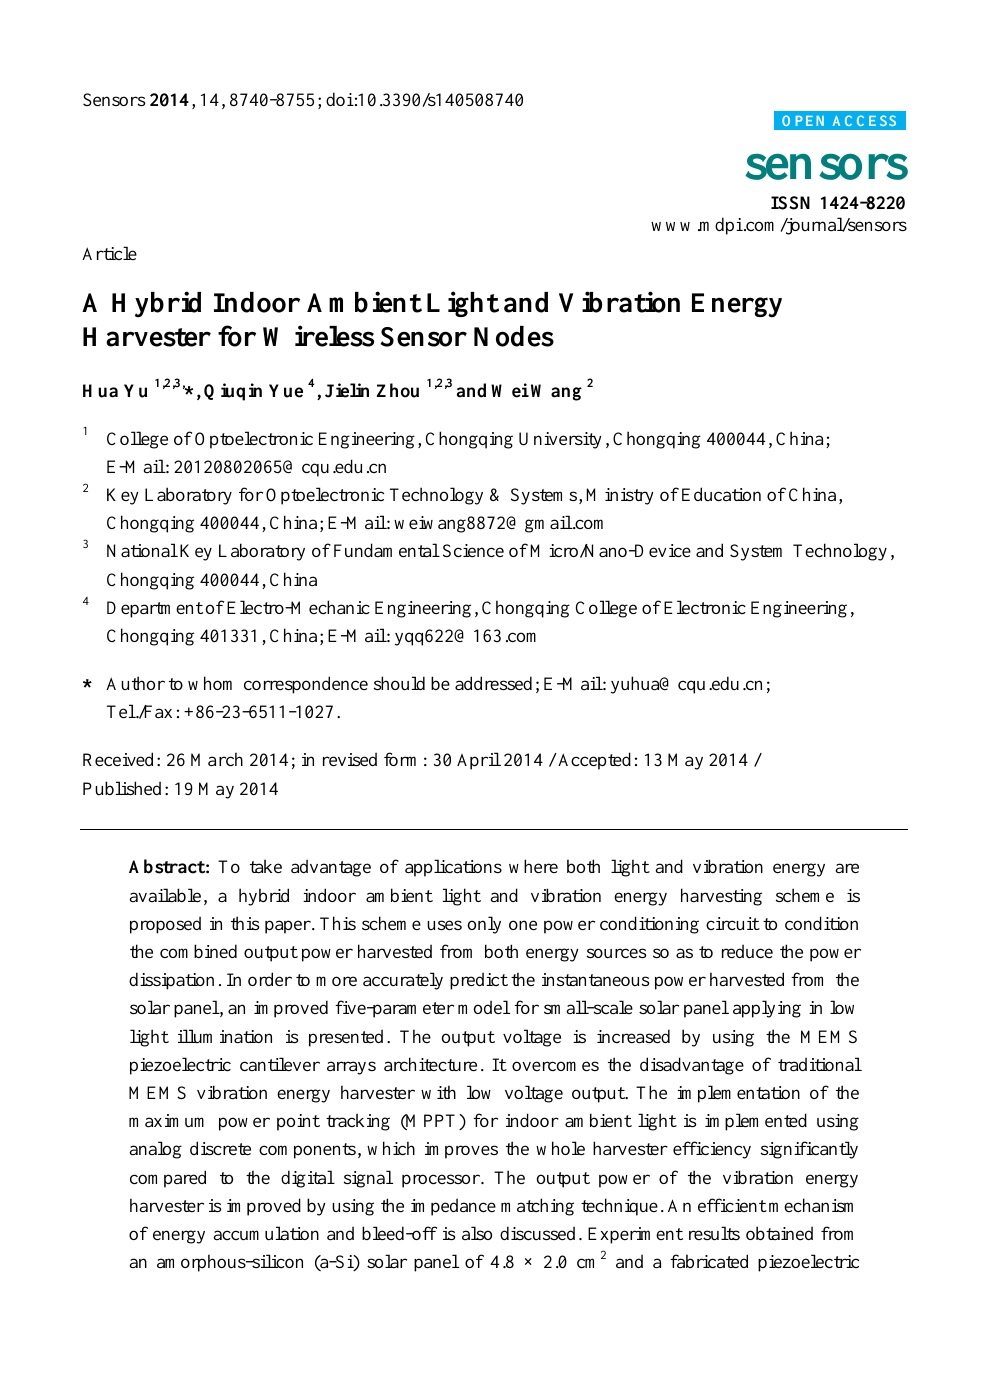 A Hybrid Indoor Ambient Light and Vibration Energy Harvester